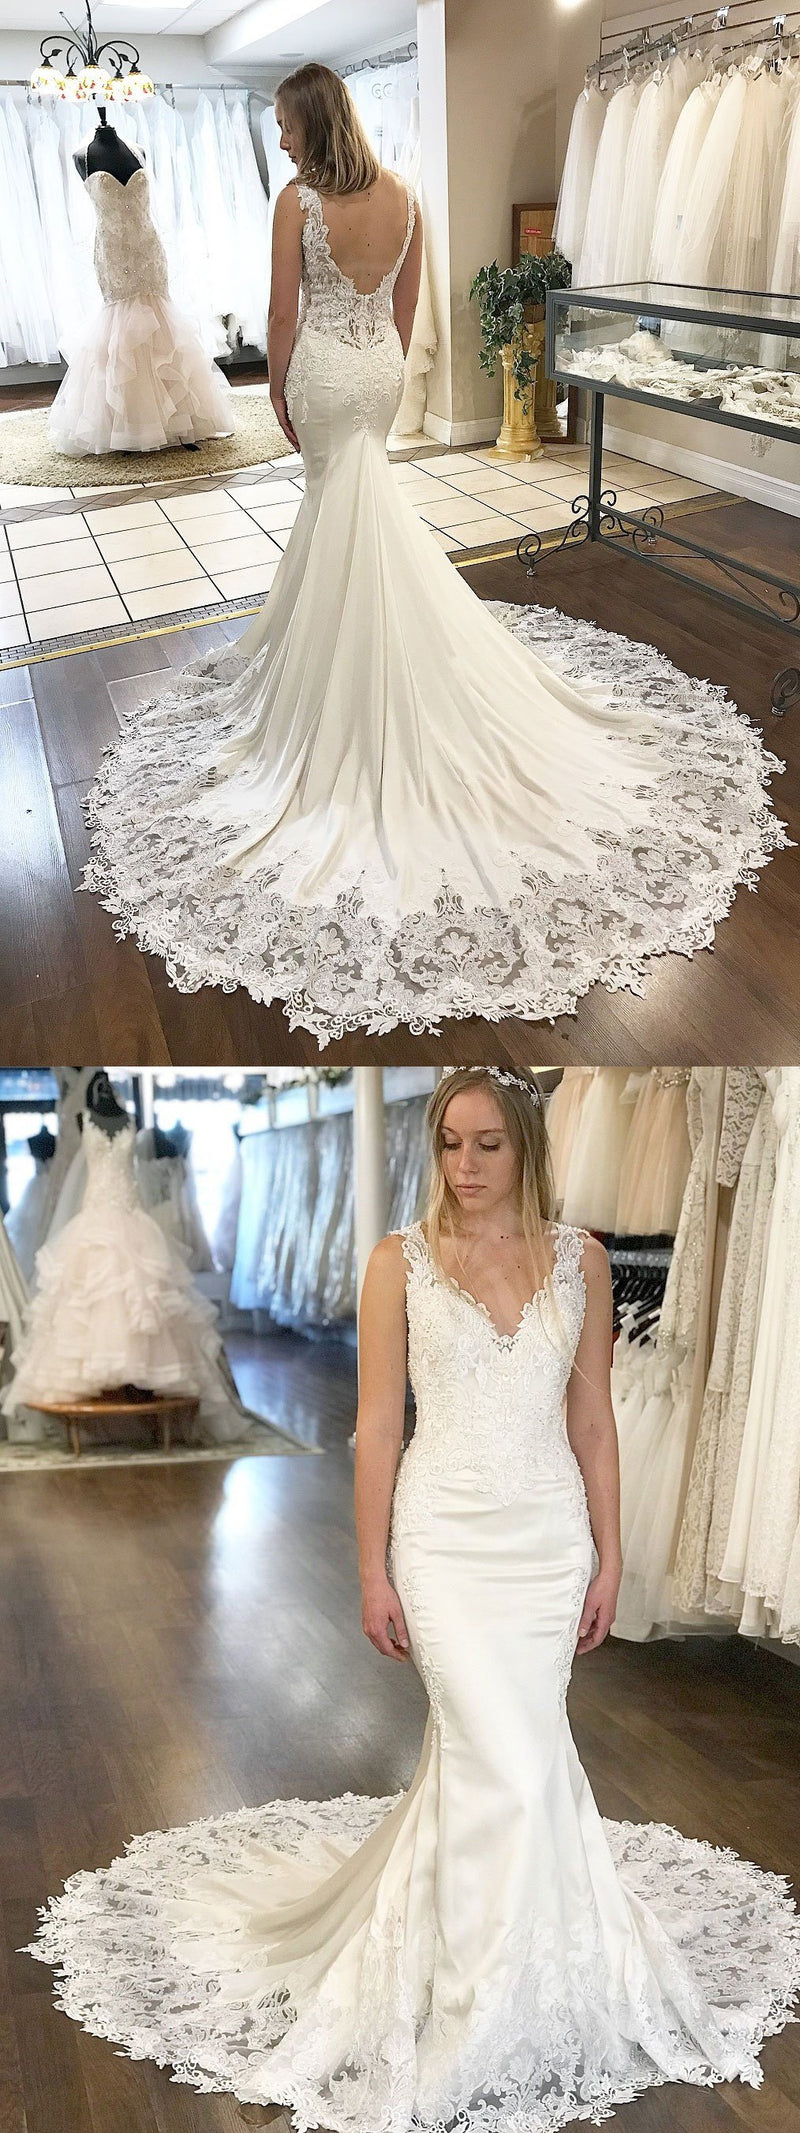 V-Neck Mermaid Unique Design Modest Affordable  Long Wedding Dresses with lace appliques , WD0563